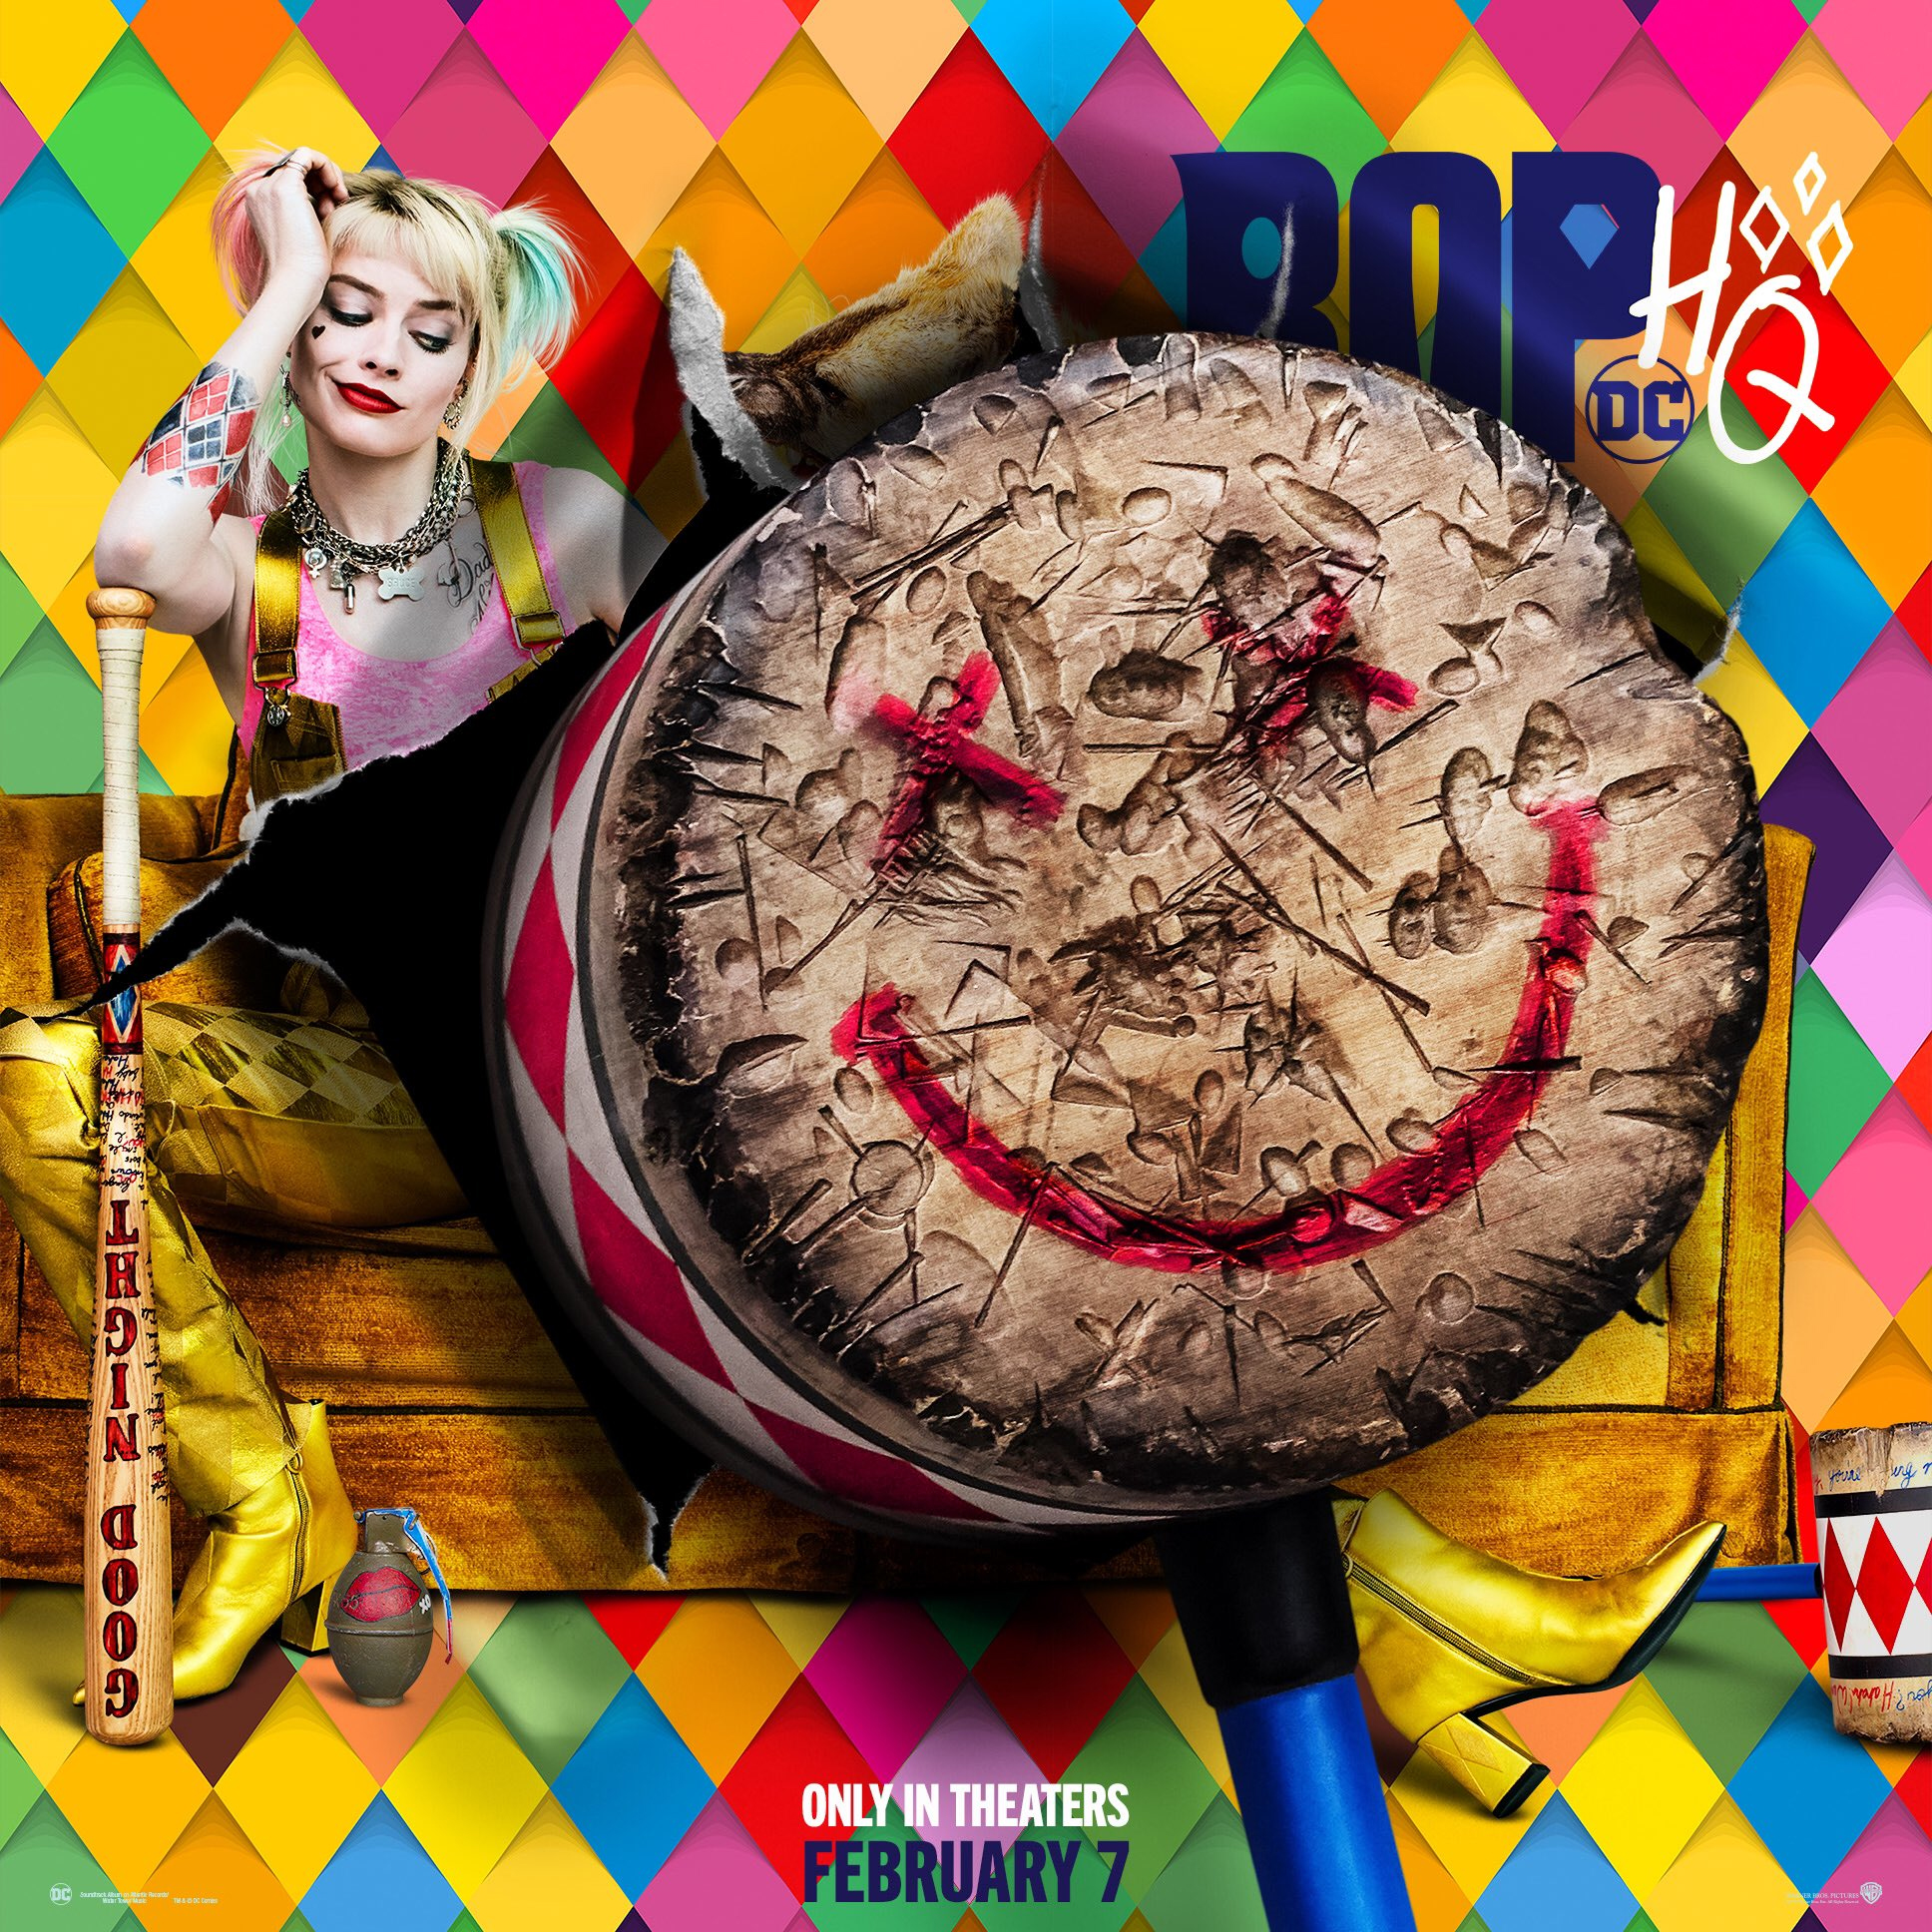 Birds Of Prey And The Fantabulous Emancipation Of One Harley Quinn 2020 Poster Harley Quinn Foto 43029375 Fanpop